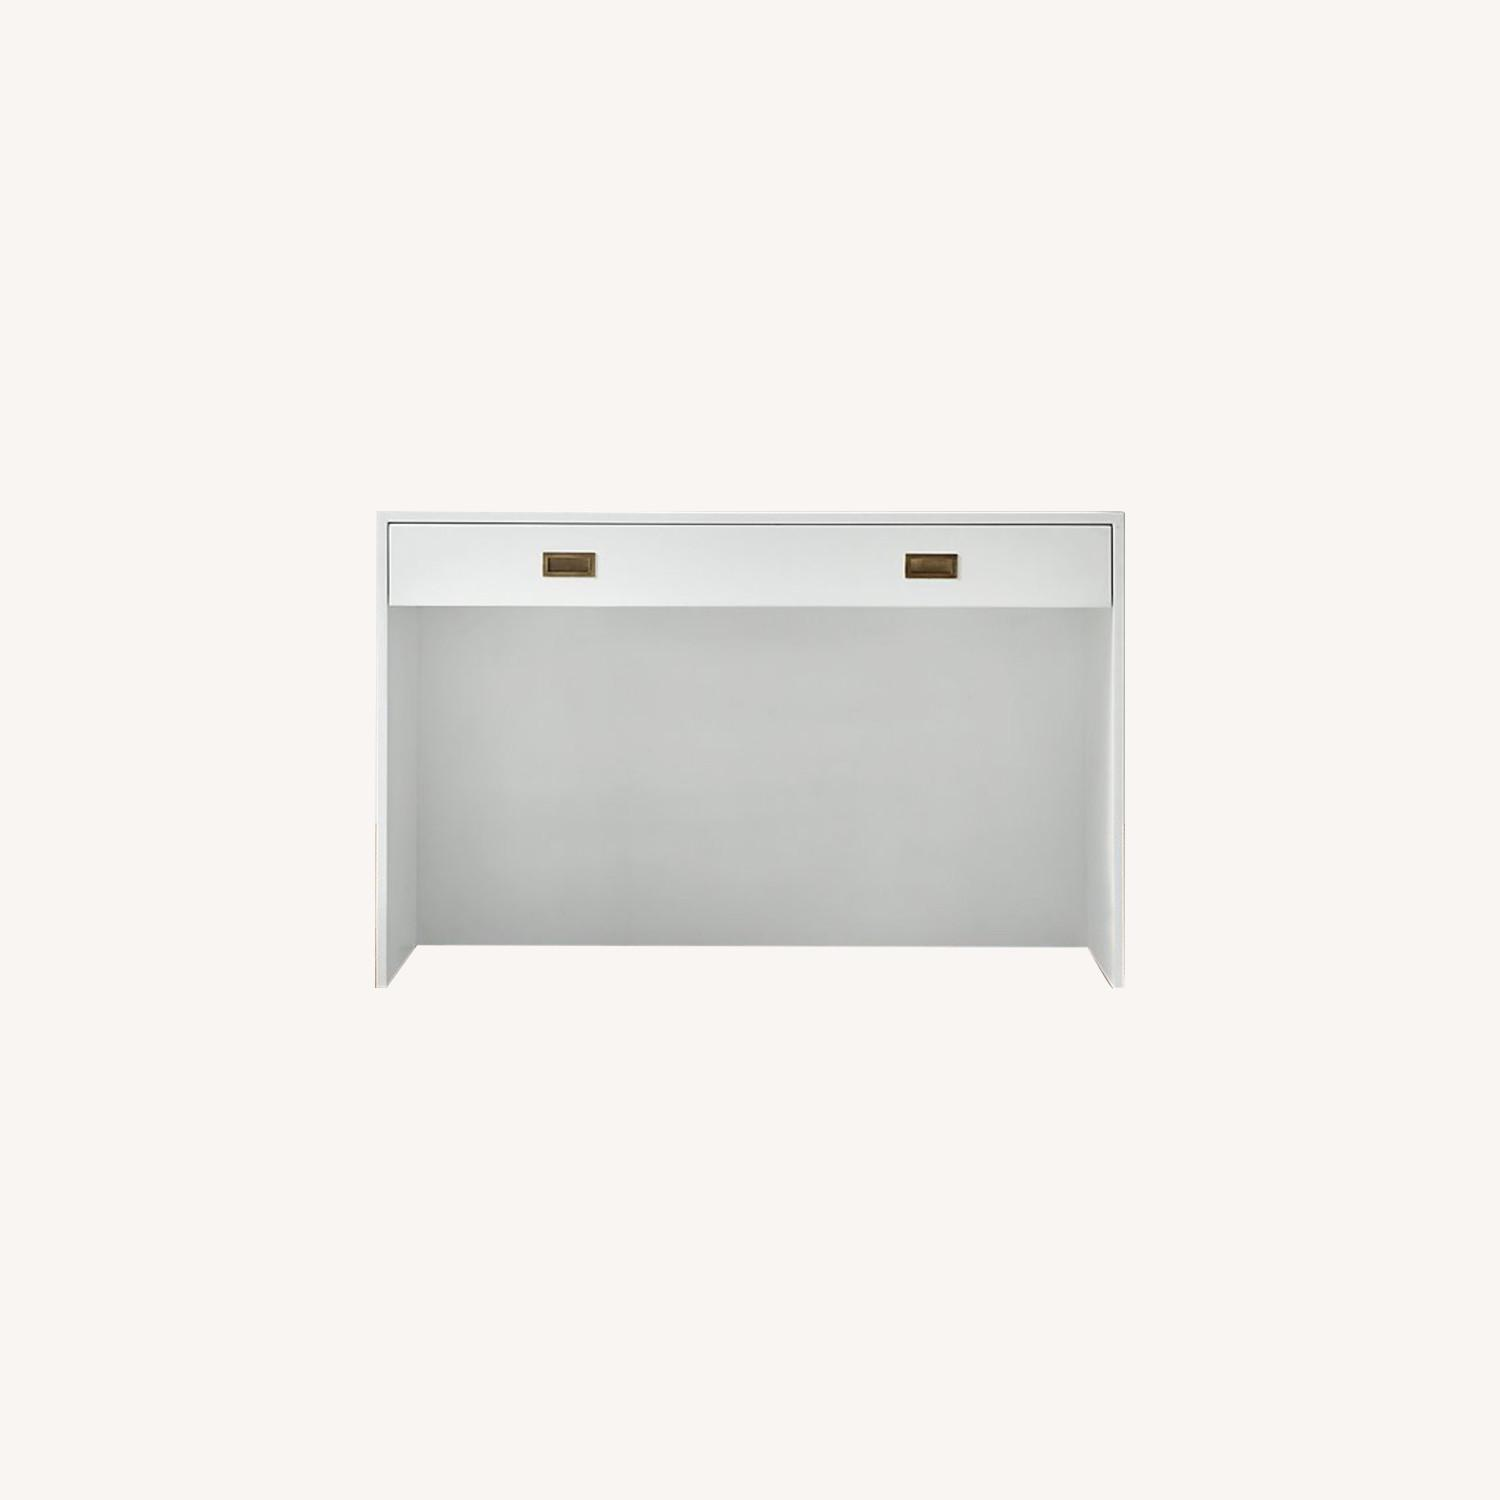 Restoration Hardware Avalon Desk in White - image-0